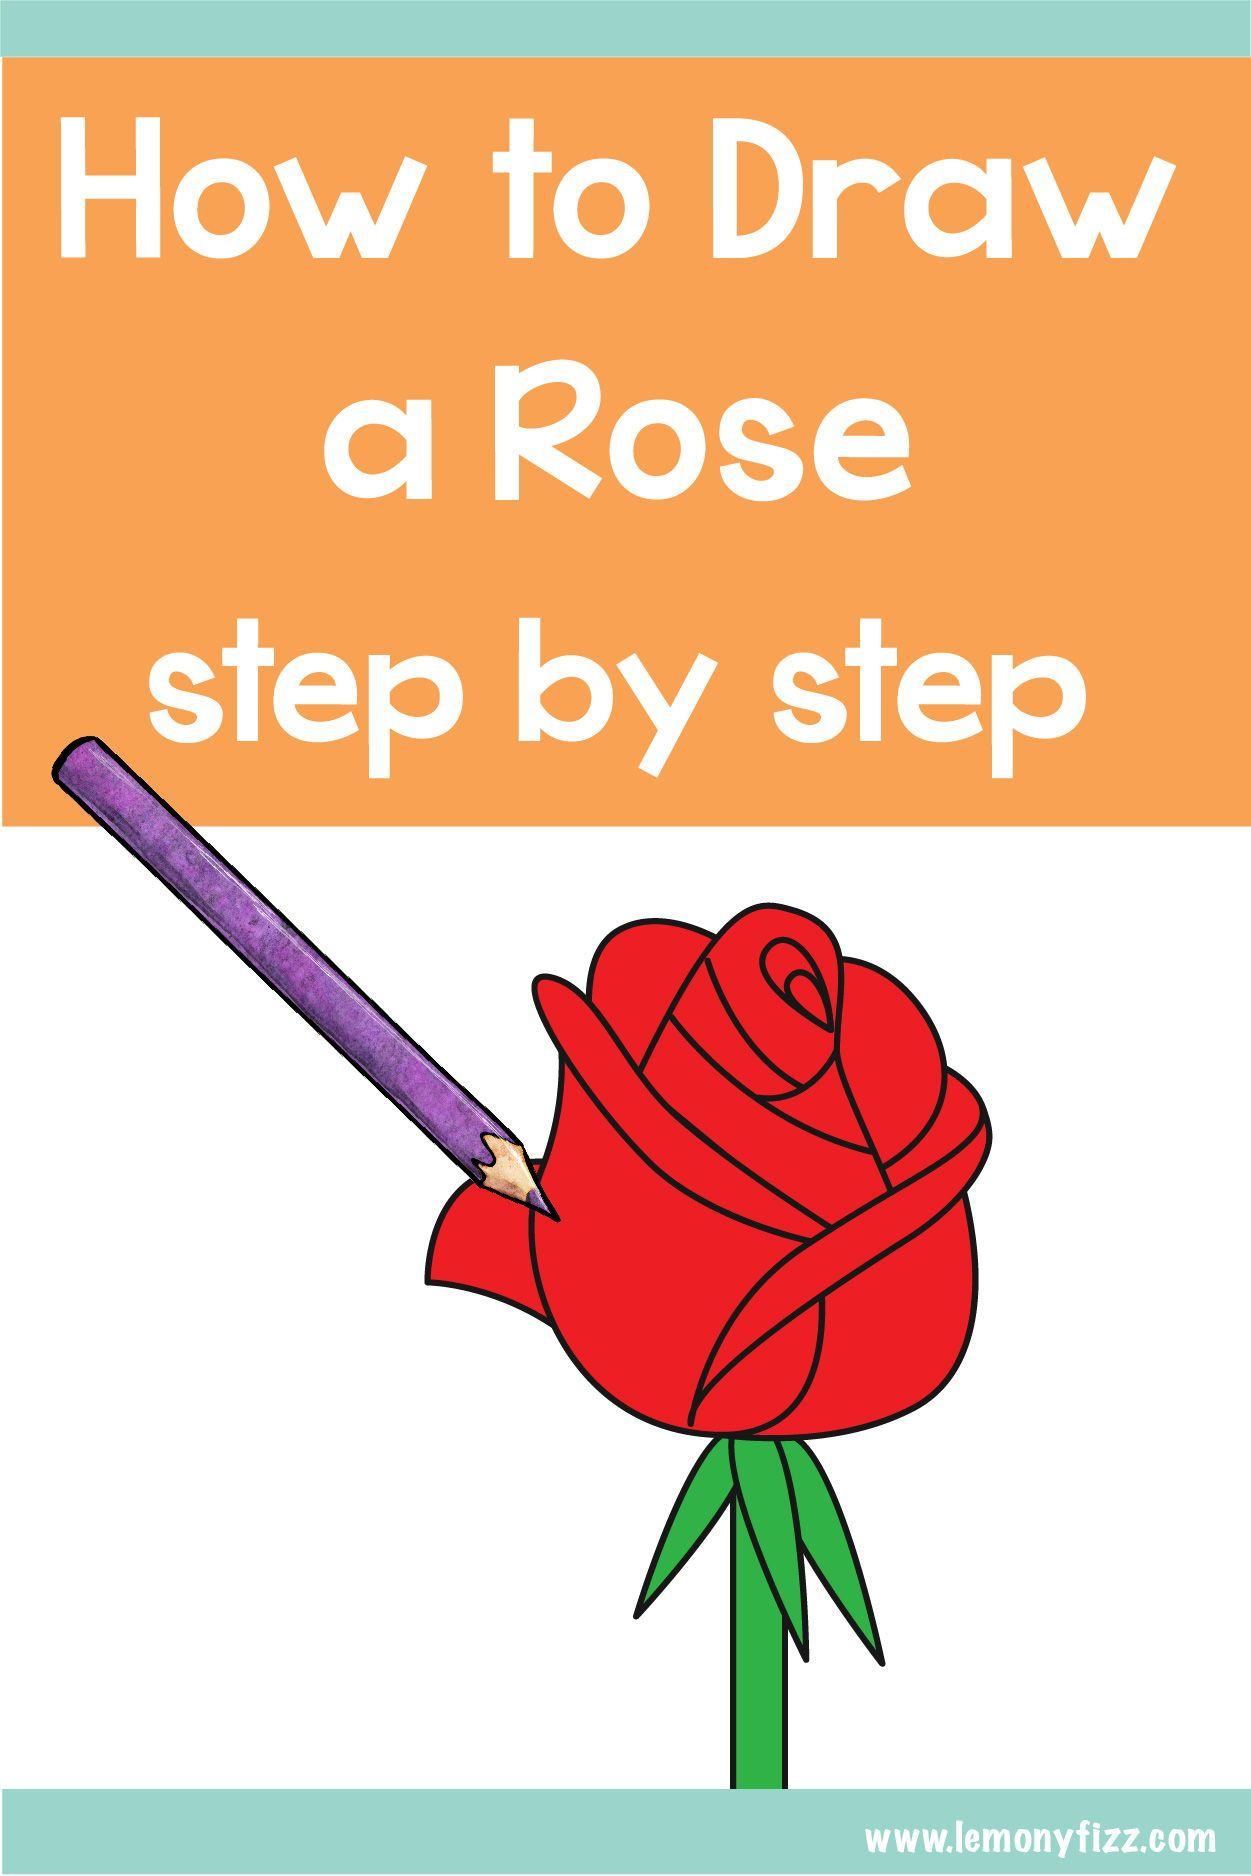 Easy How To Draw A Rose Step By Step Tutorial Rose Step By Step Bullet Journal Layout Flower Step By Step